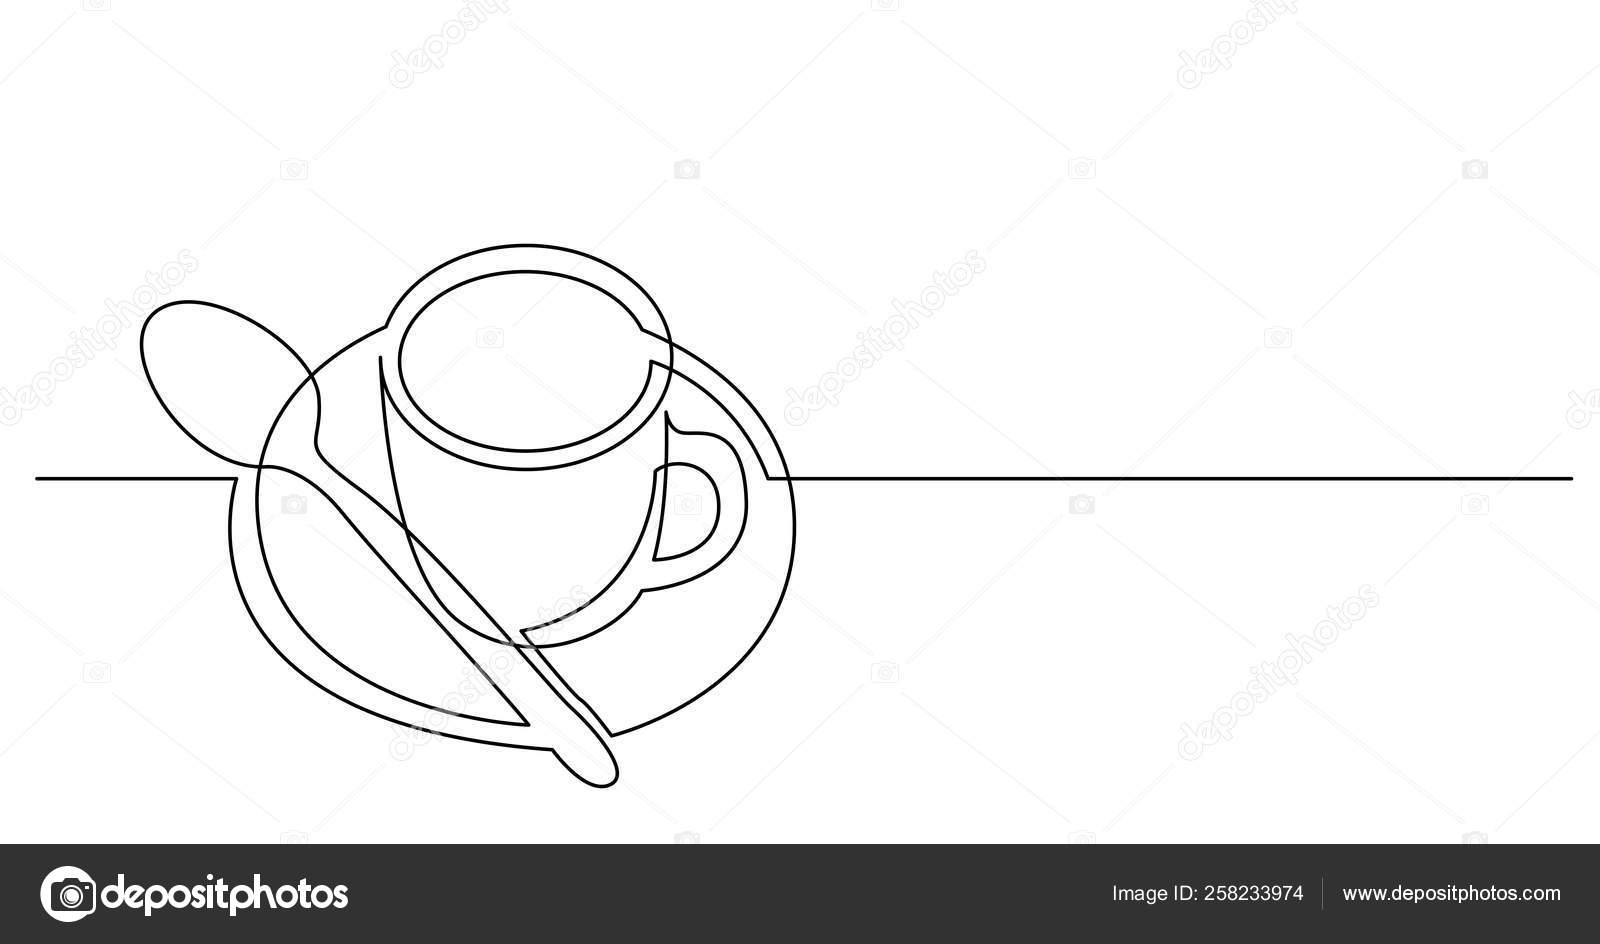 Continuous Line Drawing Of Cup Of Coffee With Spoon And Saucer Stock Vector C One Line Man 258233974